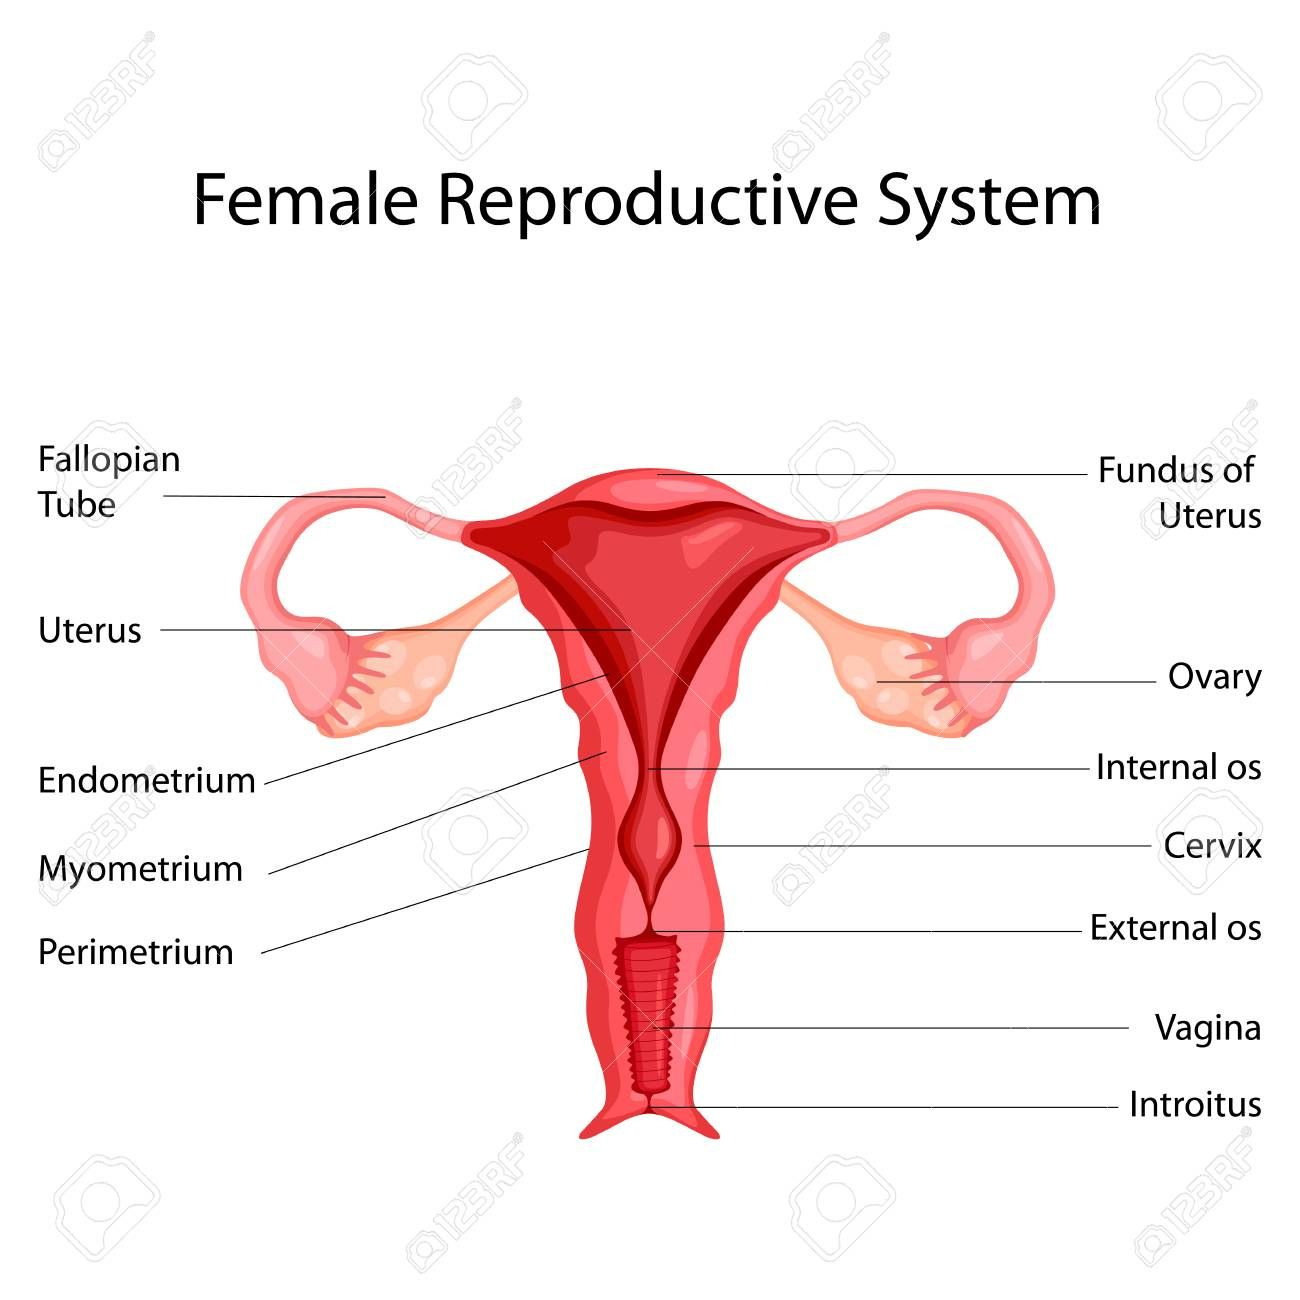 hight resolution of image of female reproductive system diagram image of female reproductive system diagram education chart of